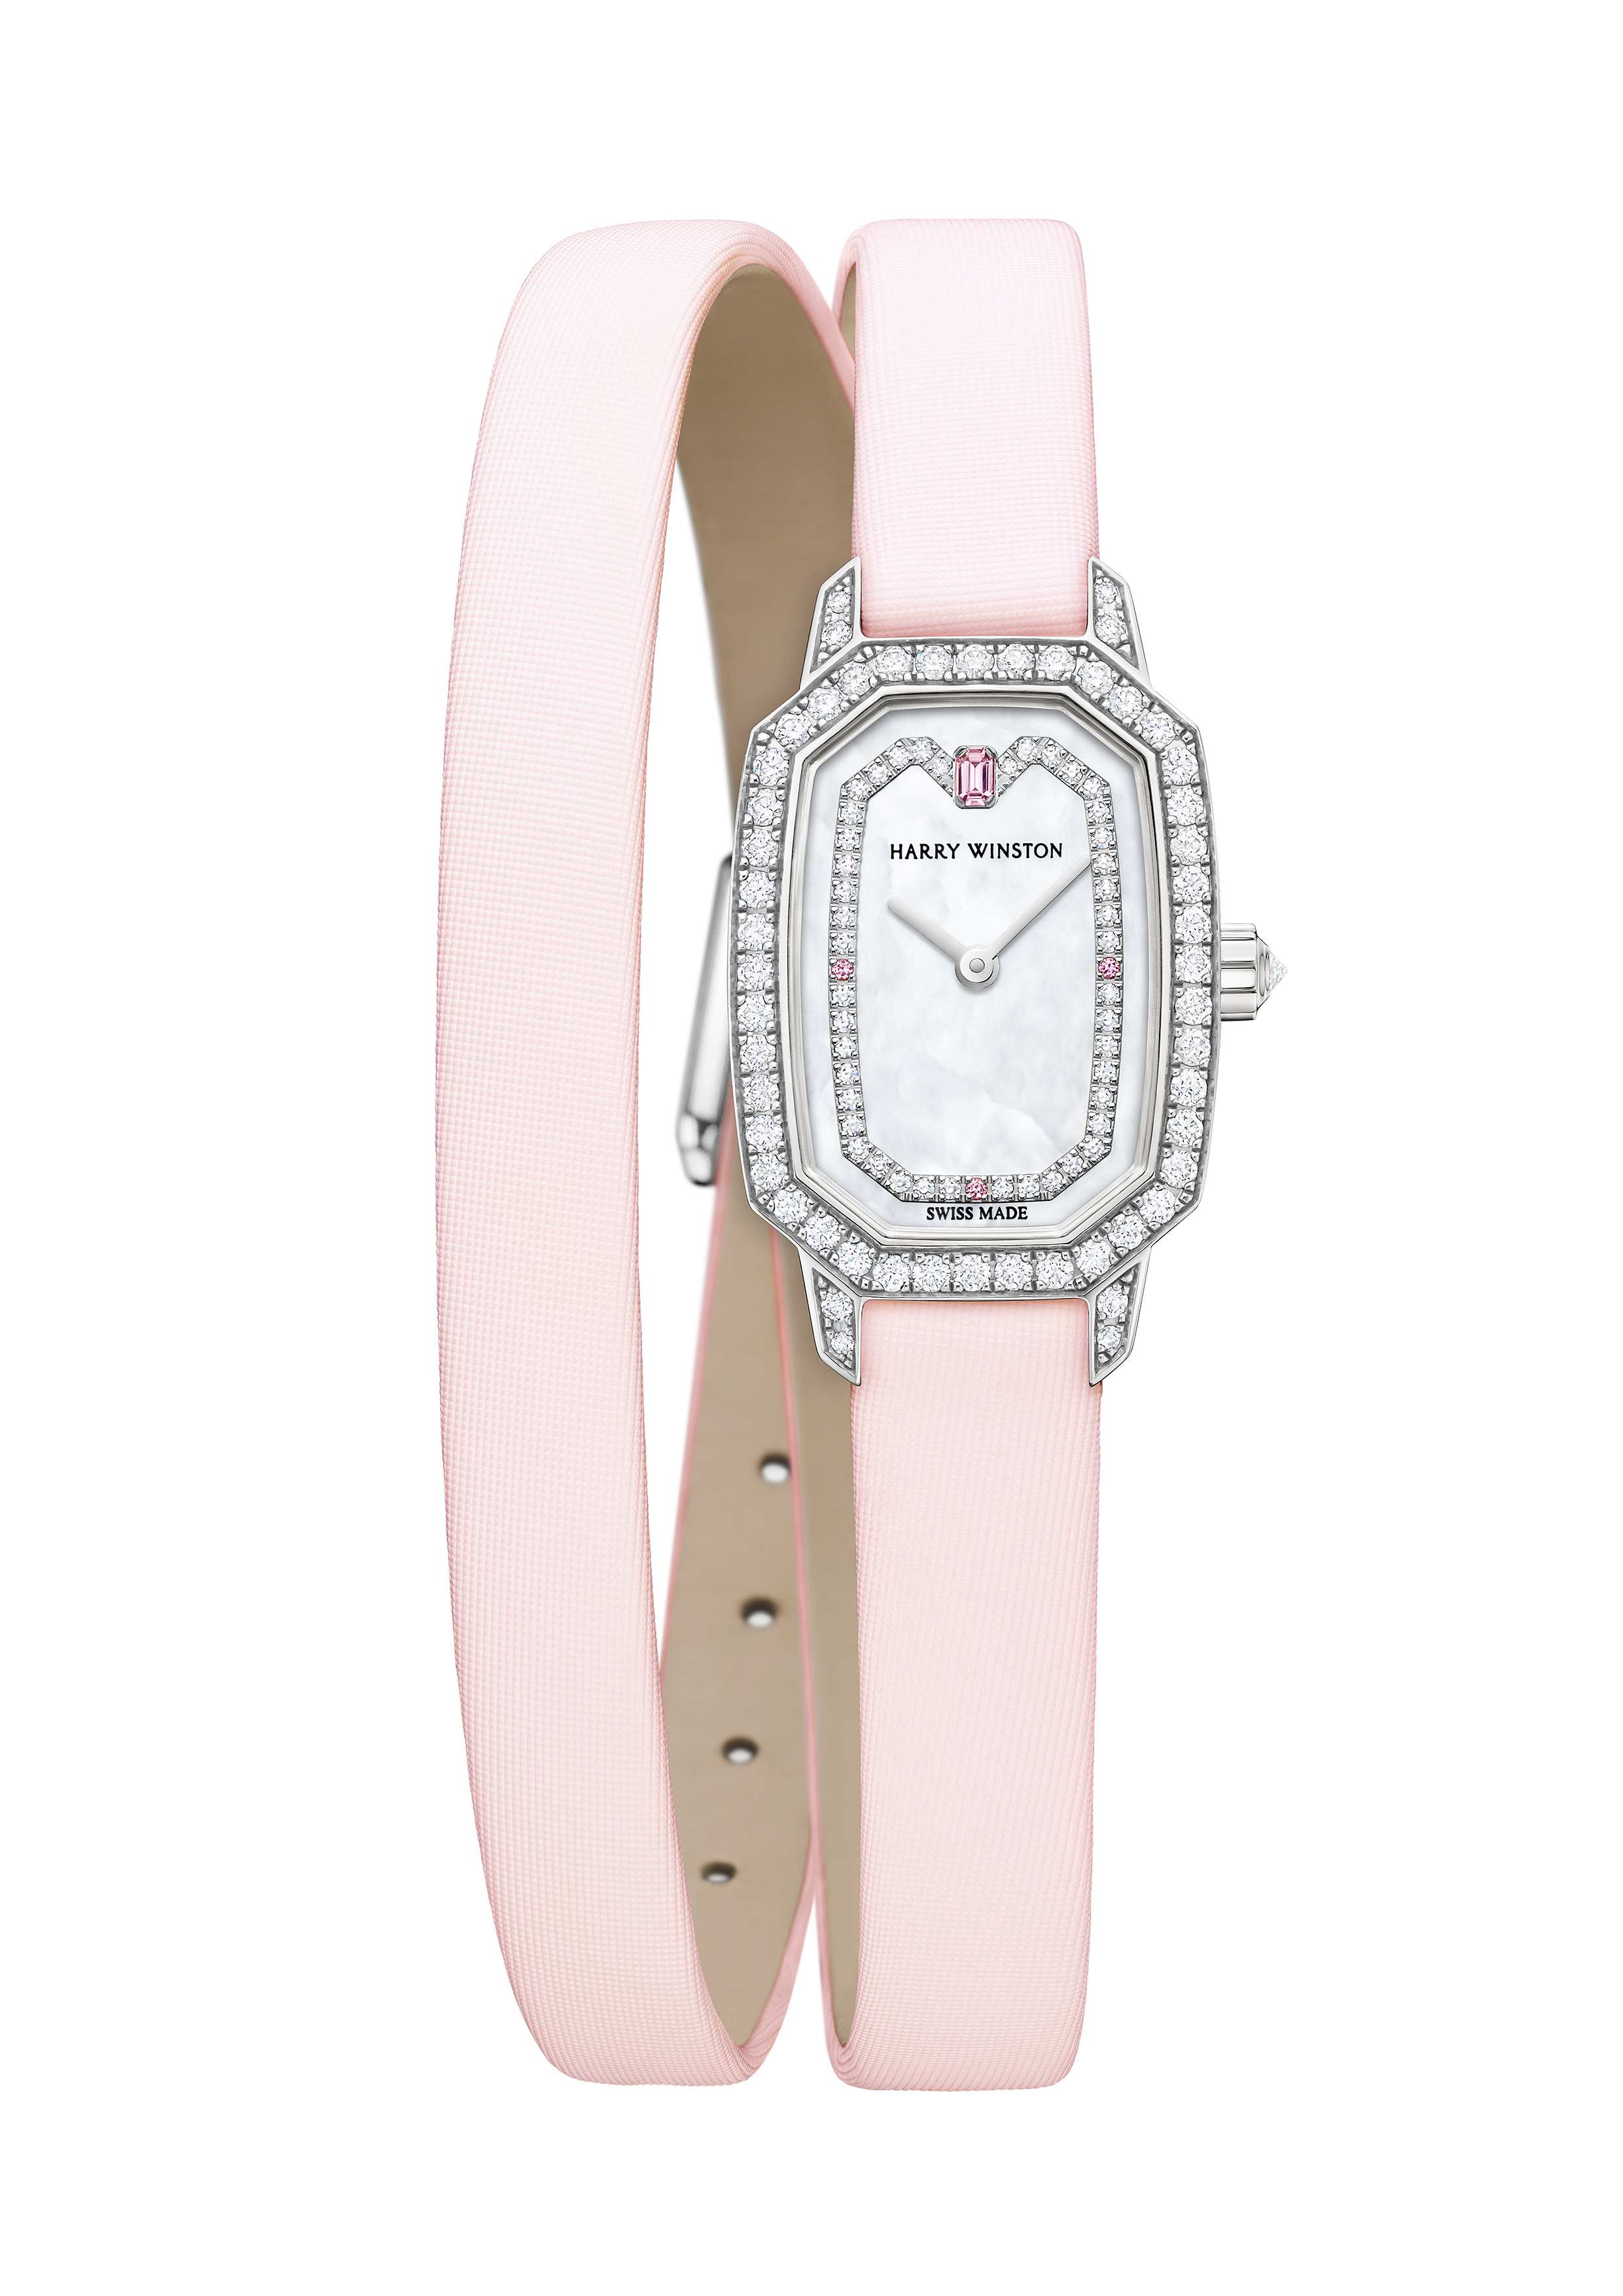 The Harry Winston Emerald watch is powered by a quartz movement.